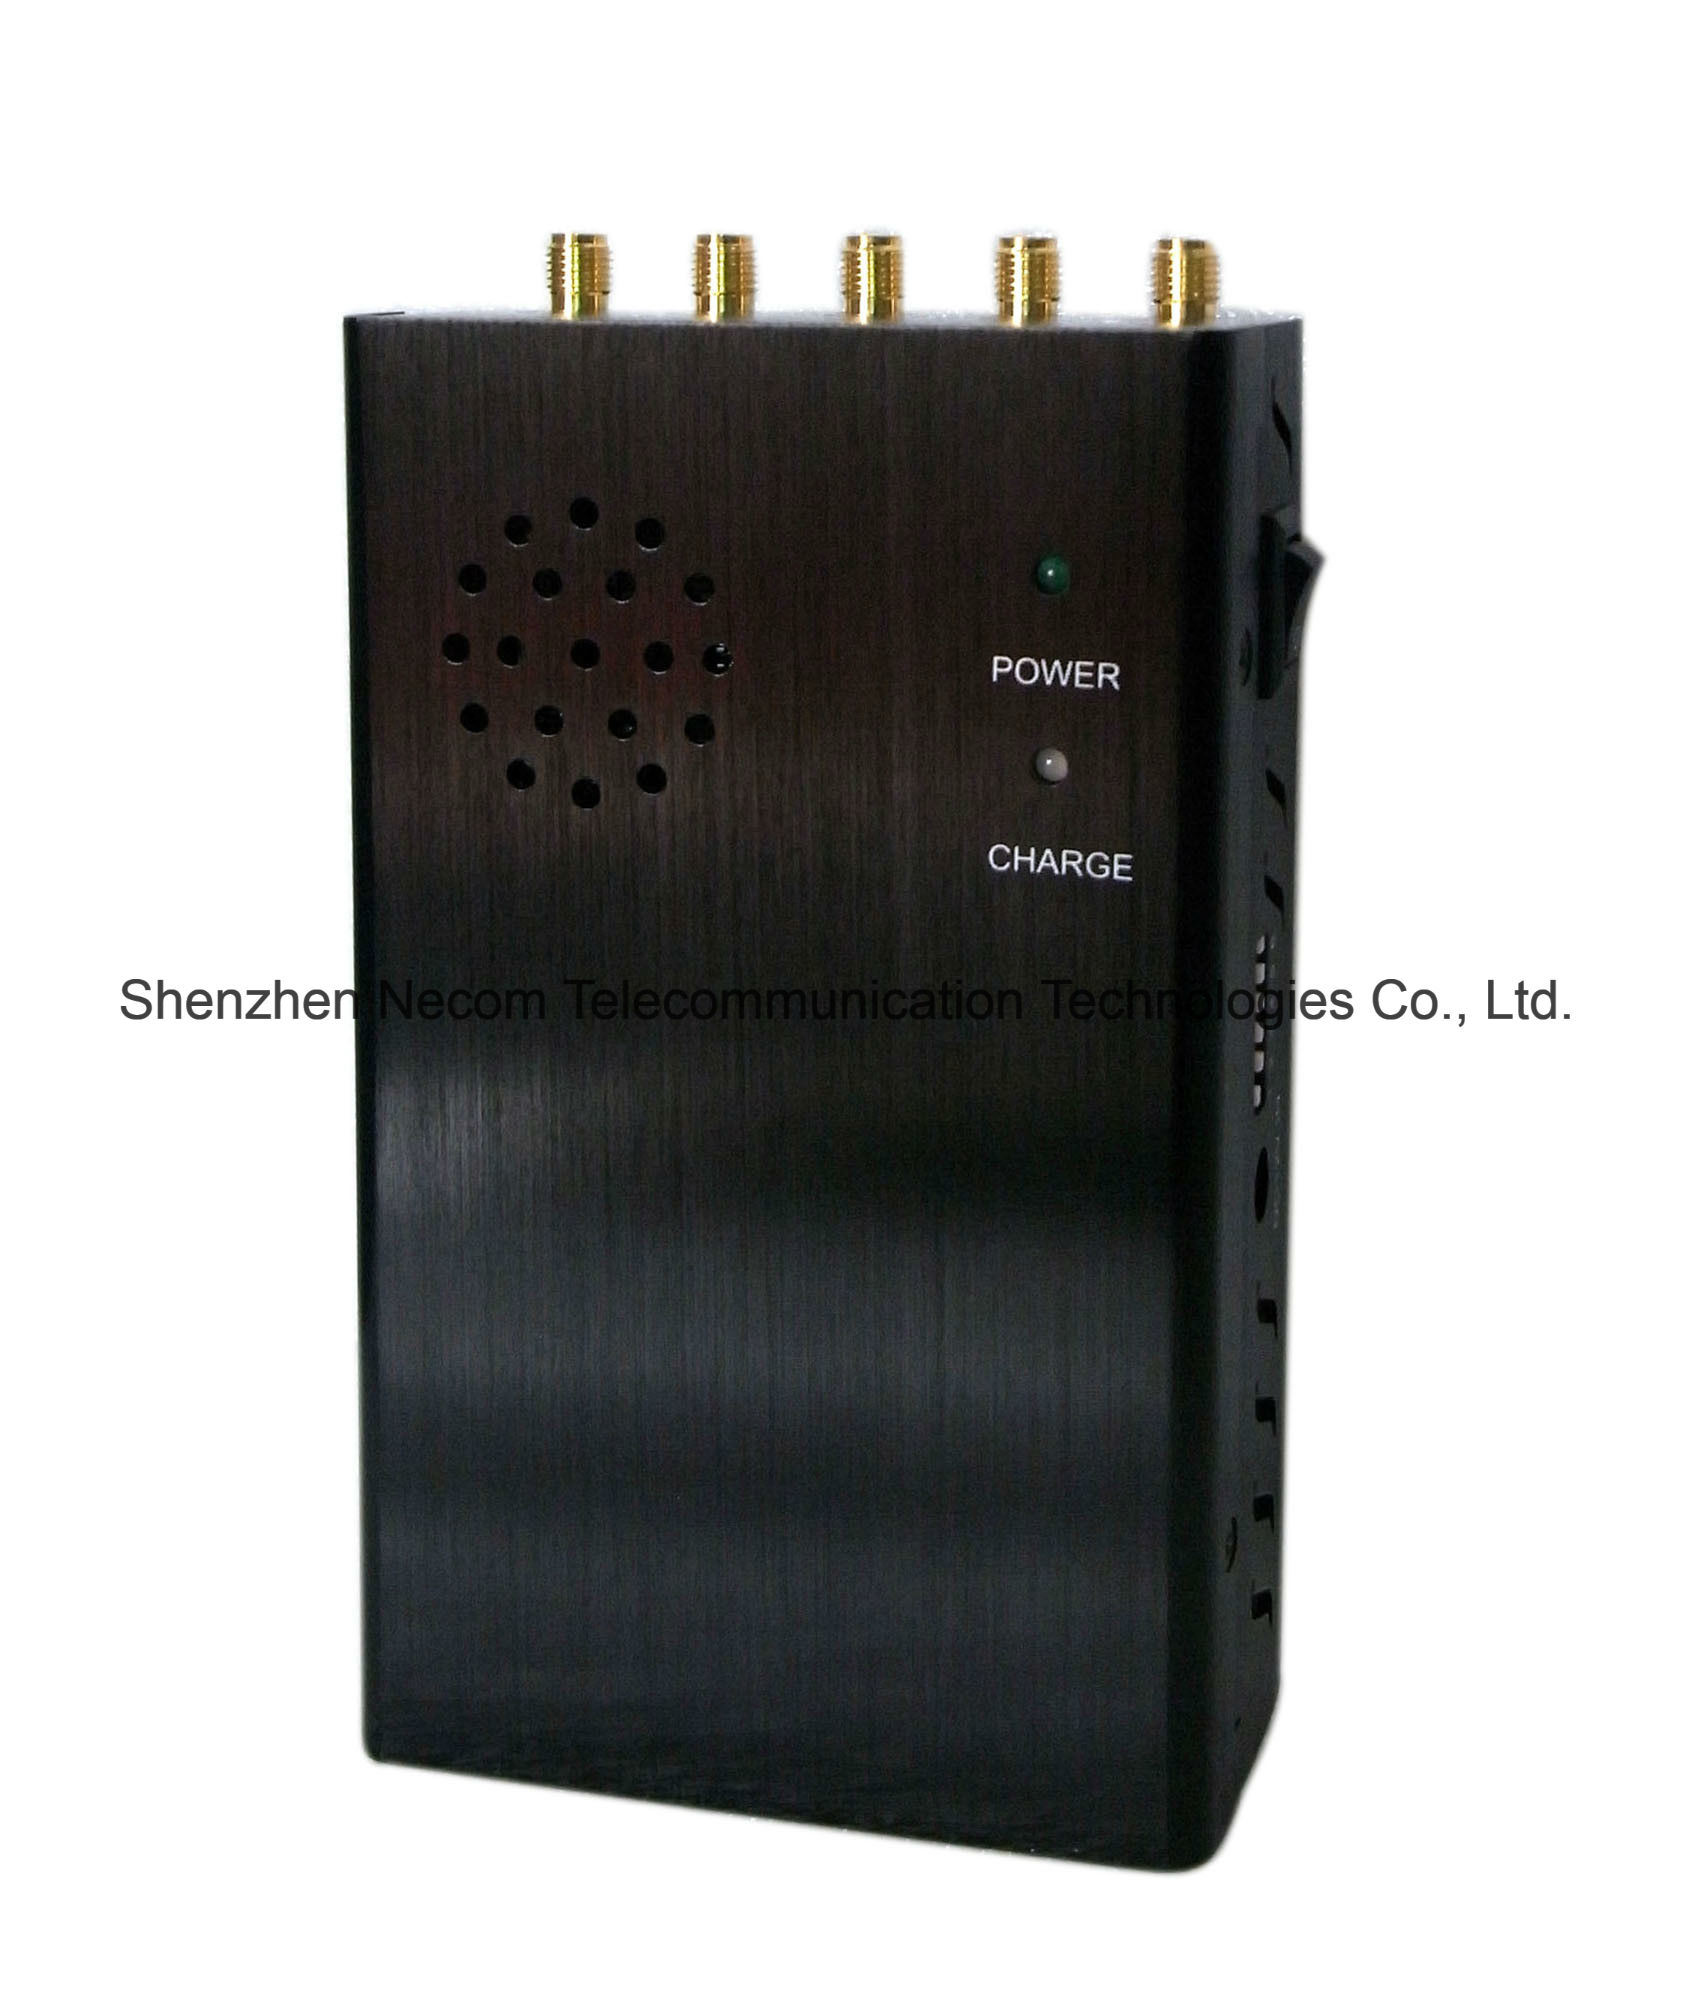 spr-1 mobile jammer tools - China Wireless Signal Jammer with Good Quality&Favourable Price Jamming for Wired Camera, GPS Tracker, Mobile Phones, GSM Jammer/GPS Jammer /Cell Phone Jammer - China 5 Band Signal Blockers, Five Antennas Jammers